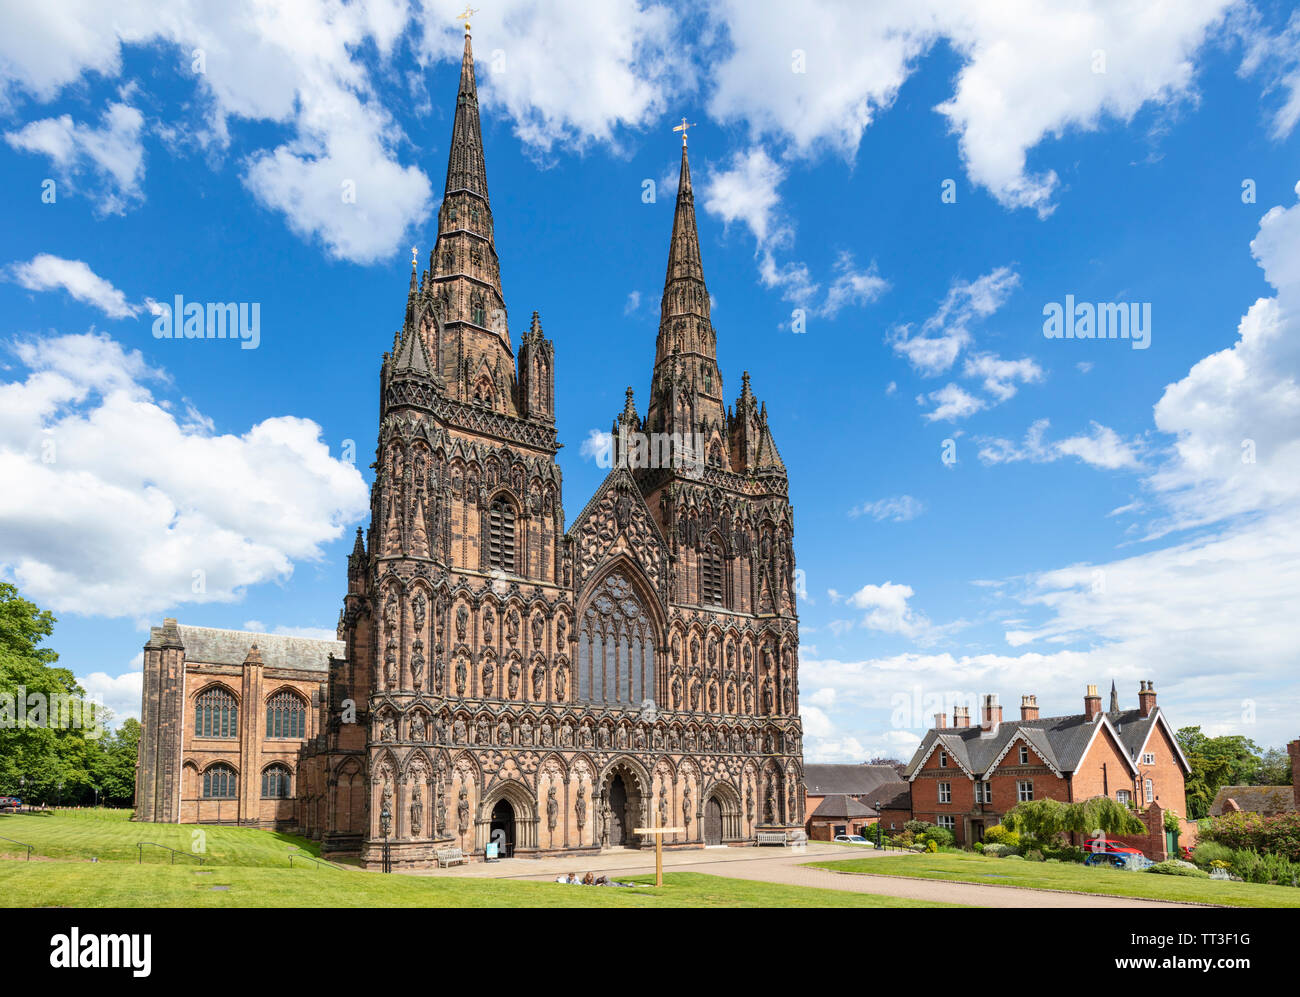 Lichfield cathedral Lichfield cathedral west front with carvings of St Chad saxon and norman kings Lichfield Staffordshire England UK GB Europe - Stock Image